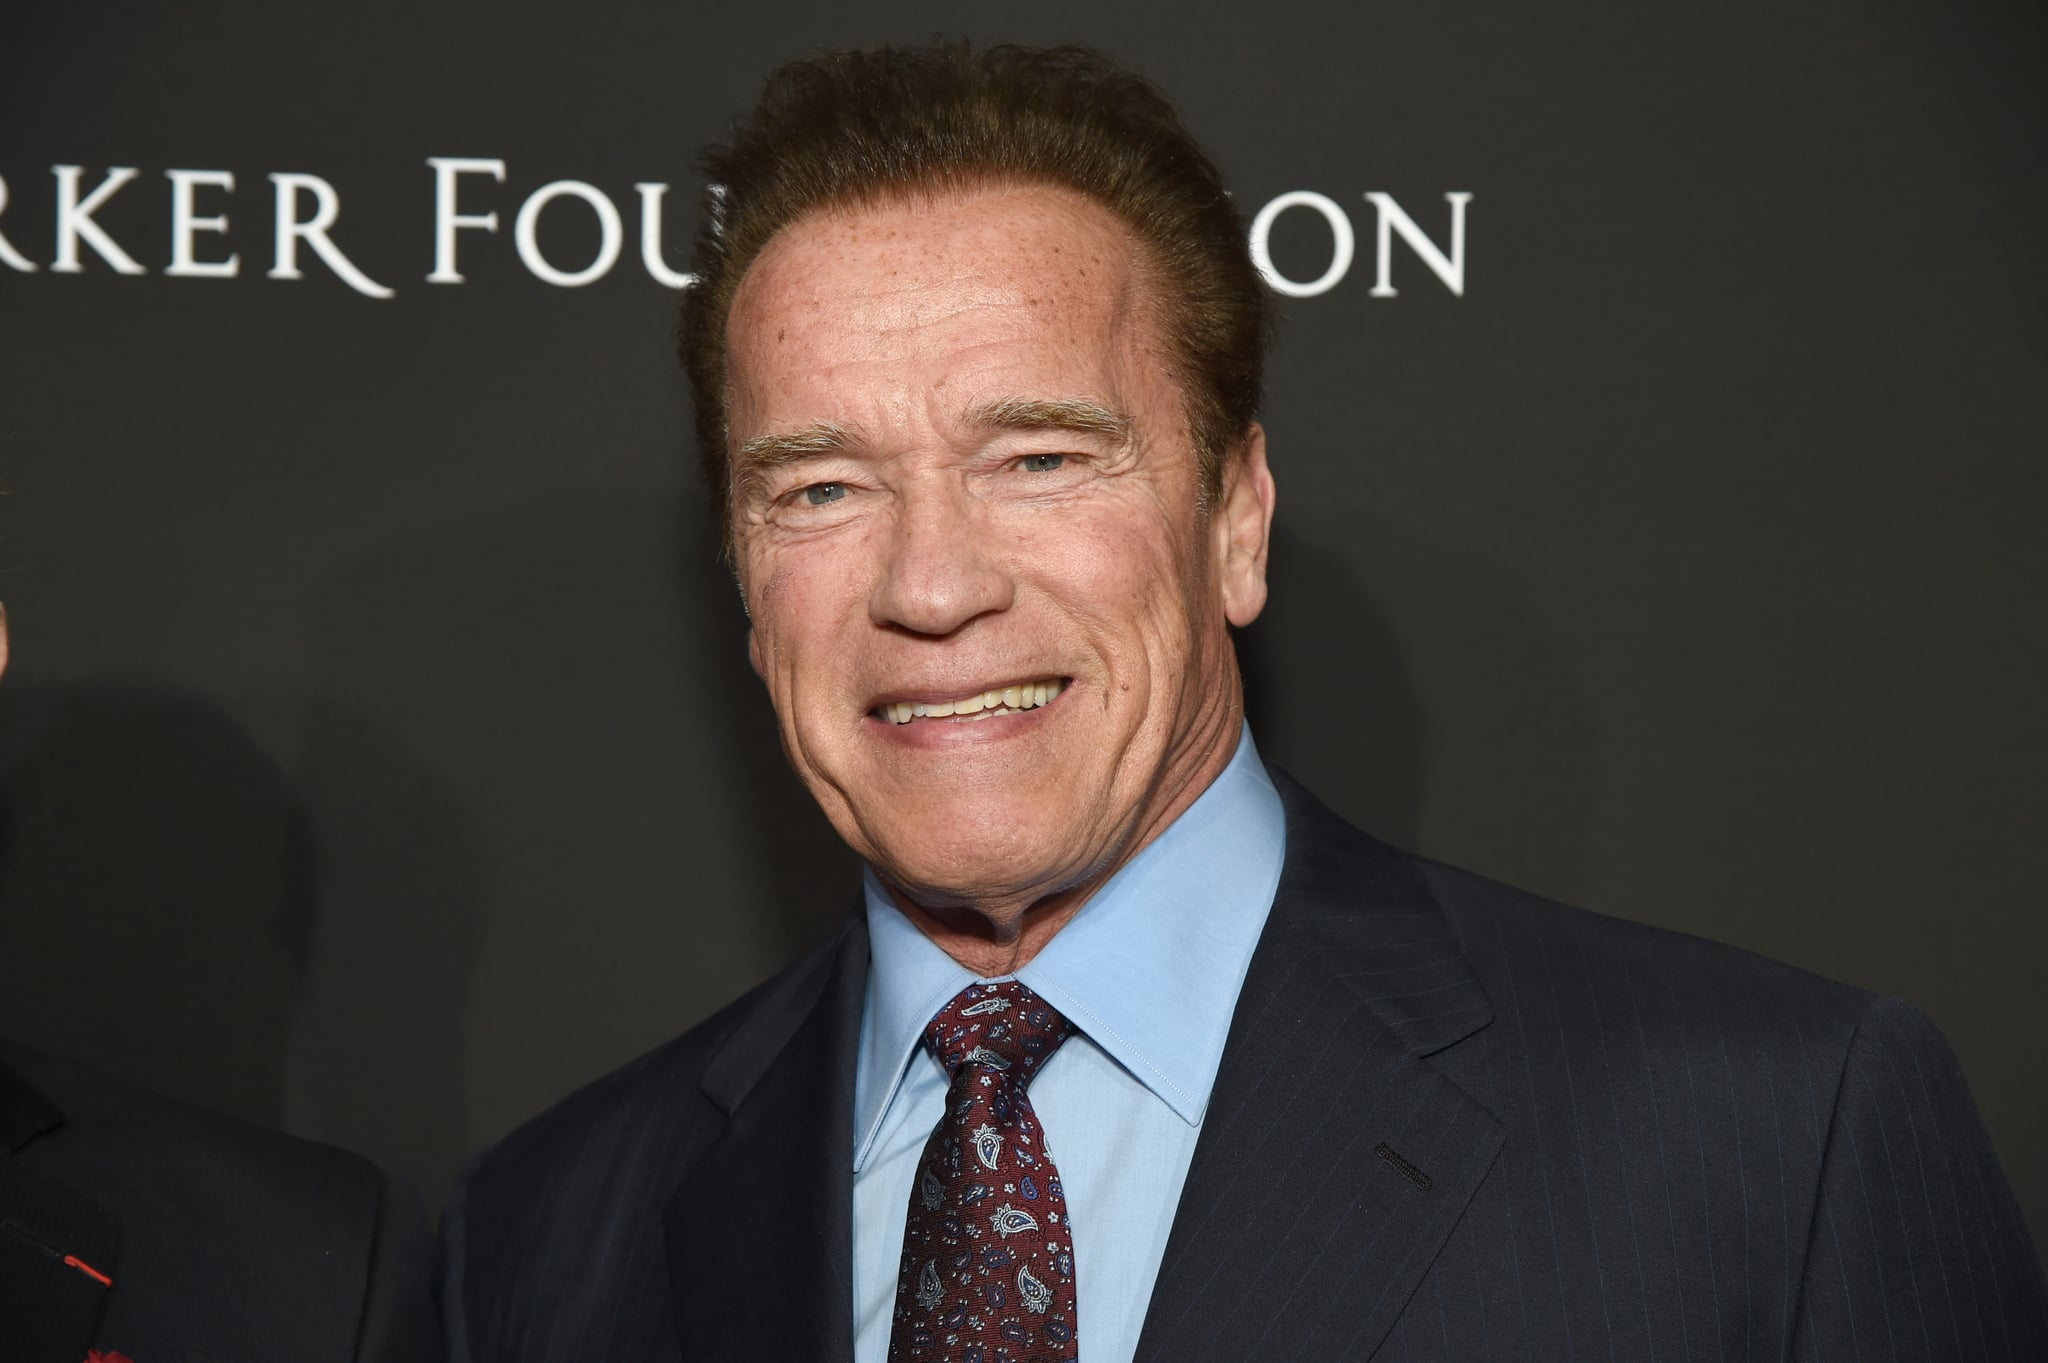 LOS ANGELES, CA - JANUARY 06: Arnold Schwarzenegger attends the 7th Annual Sean Penn & Friends HAITI RISING Gala benefiting J/P Haitian Relief Organization on January 6, 2018 in Hollywood, California.  (Photo by Michael Kovac/Getty Images for for J/P HRO Gala)